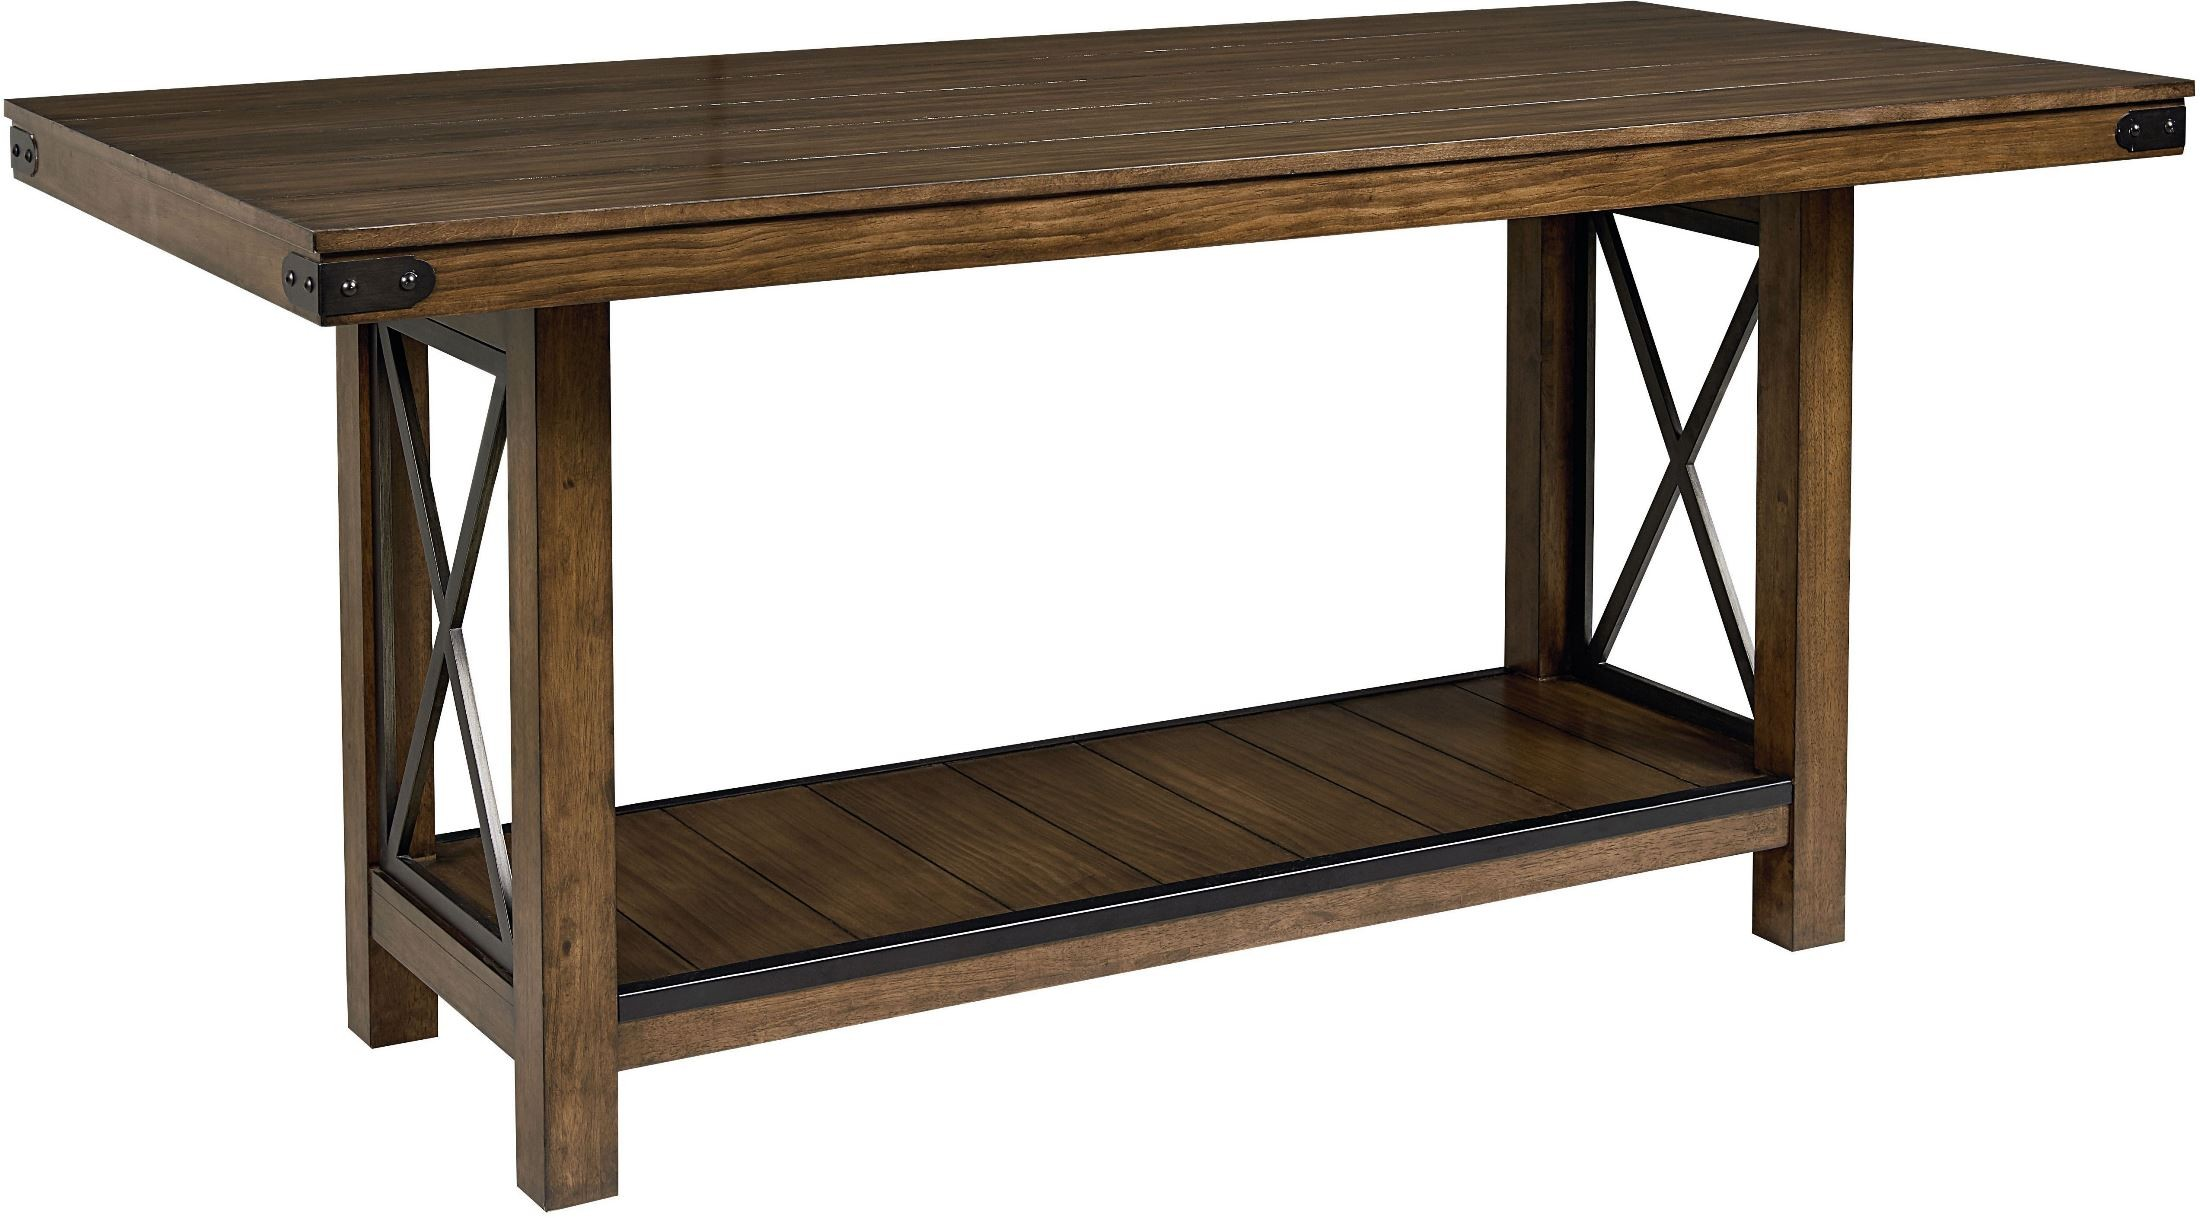 Counter Height Or Regular Dining Table : ... Brown Counter Height Trestle Dining Table , 11536, Standard Furniture